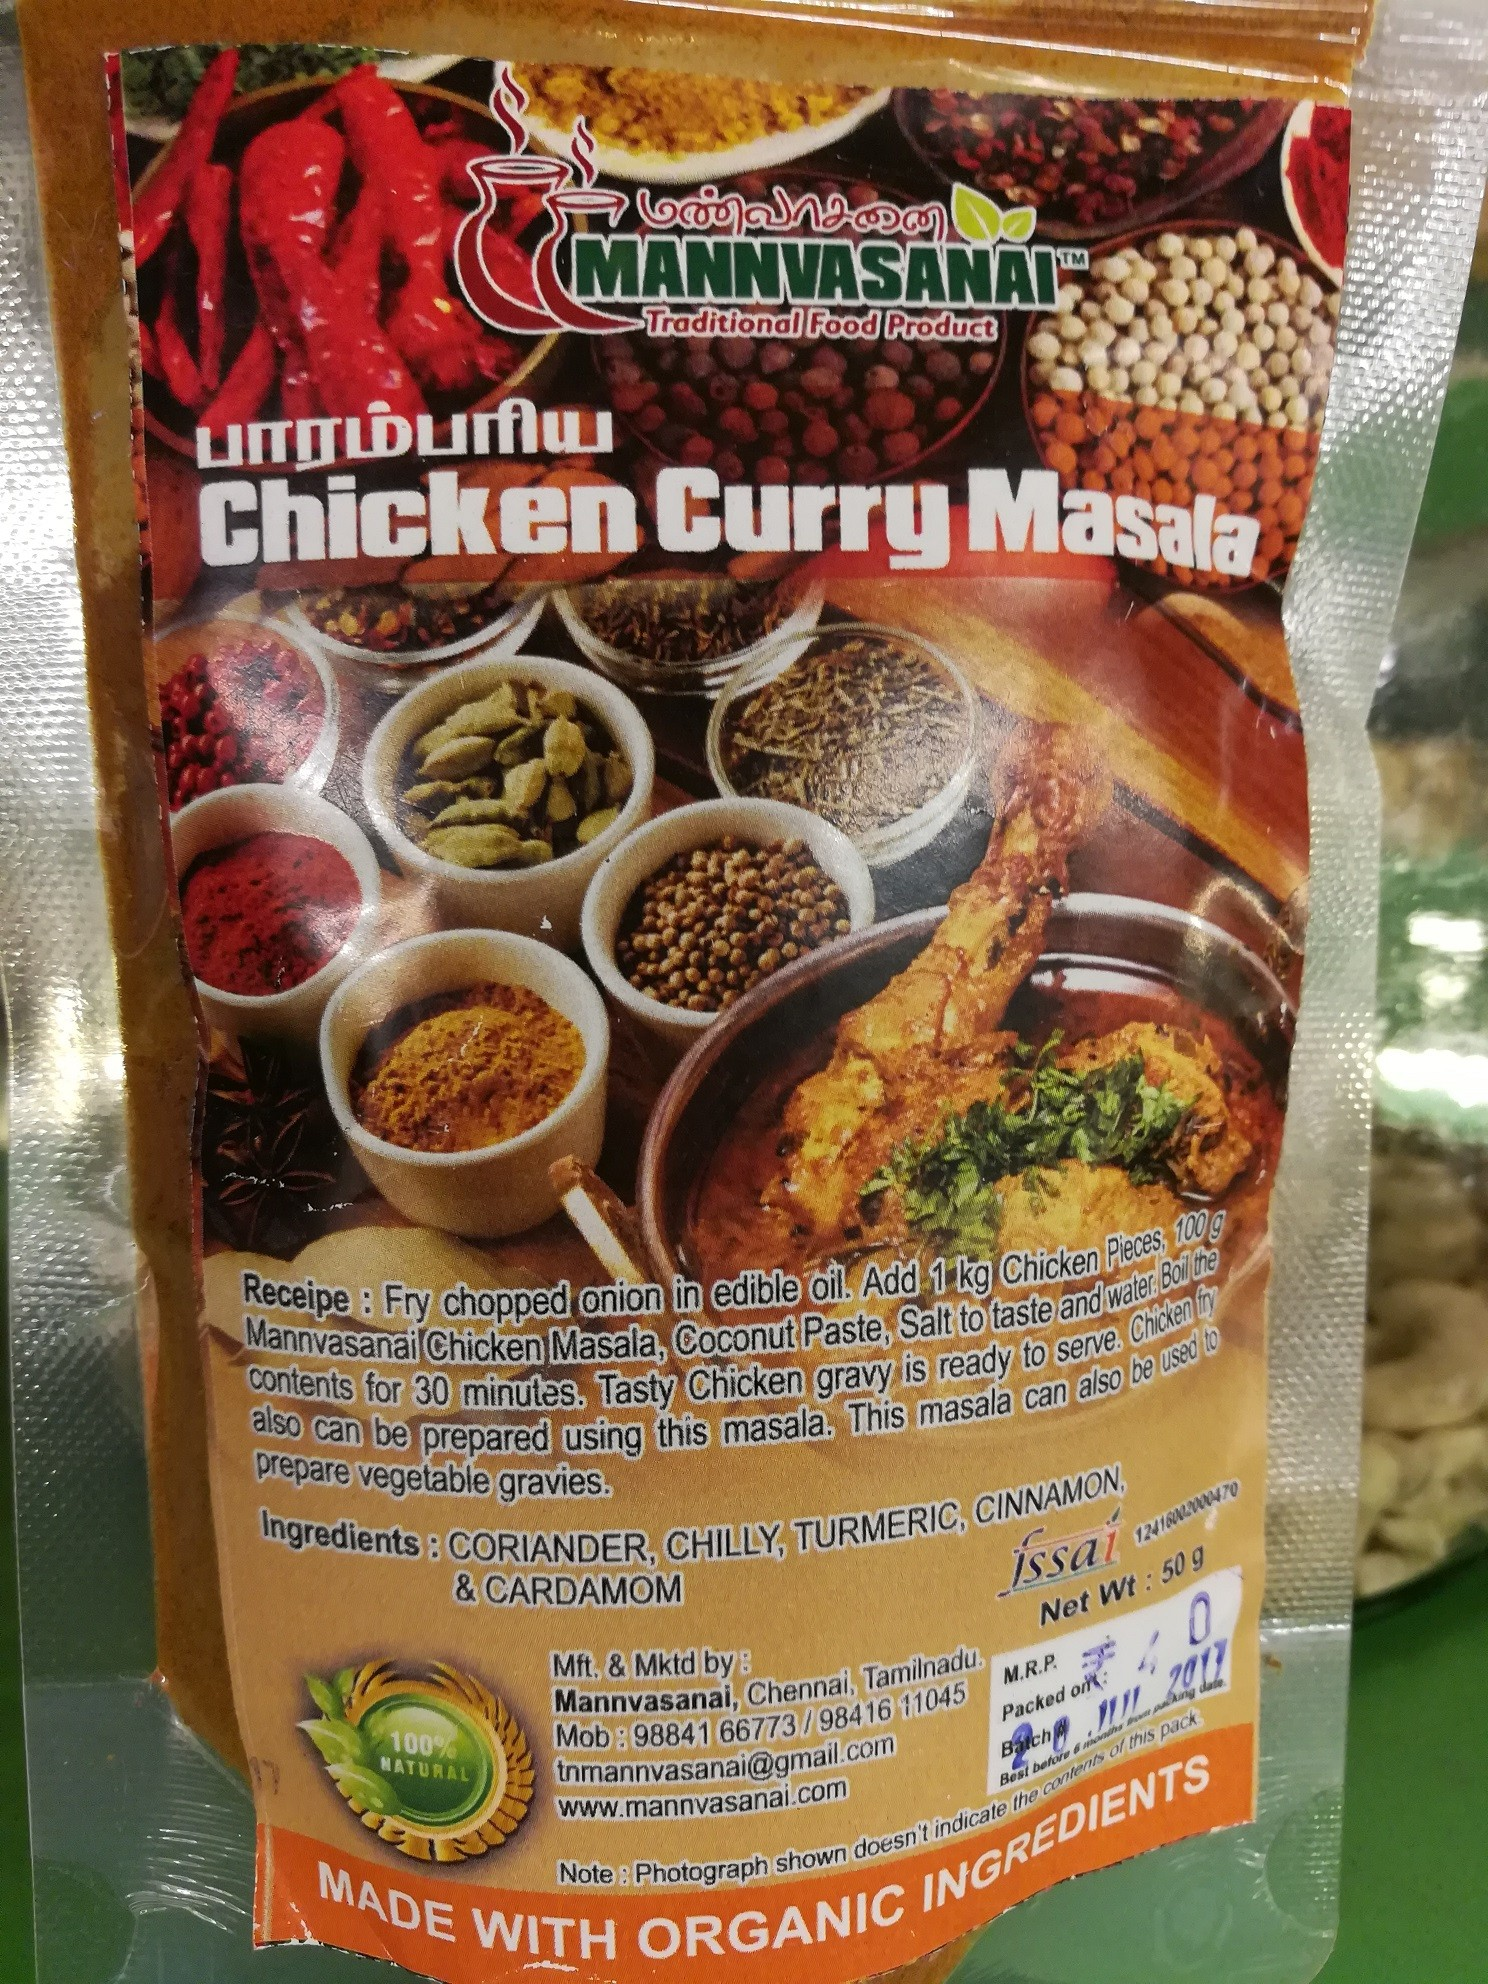 Mannvasanai Chicken curry Masala